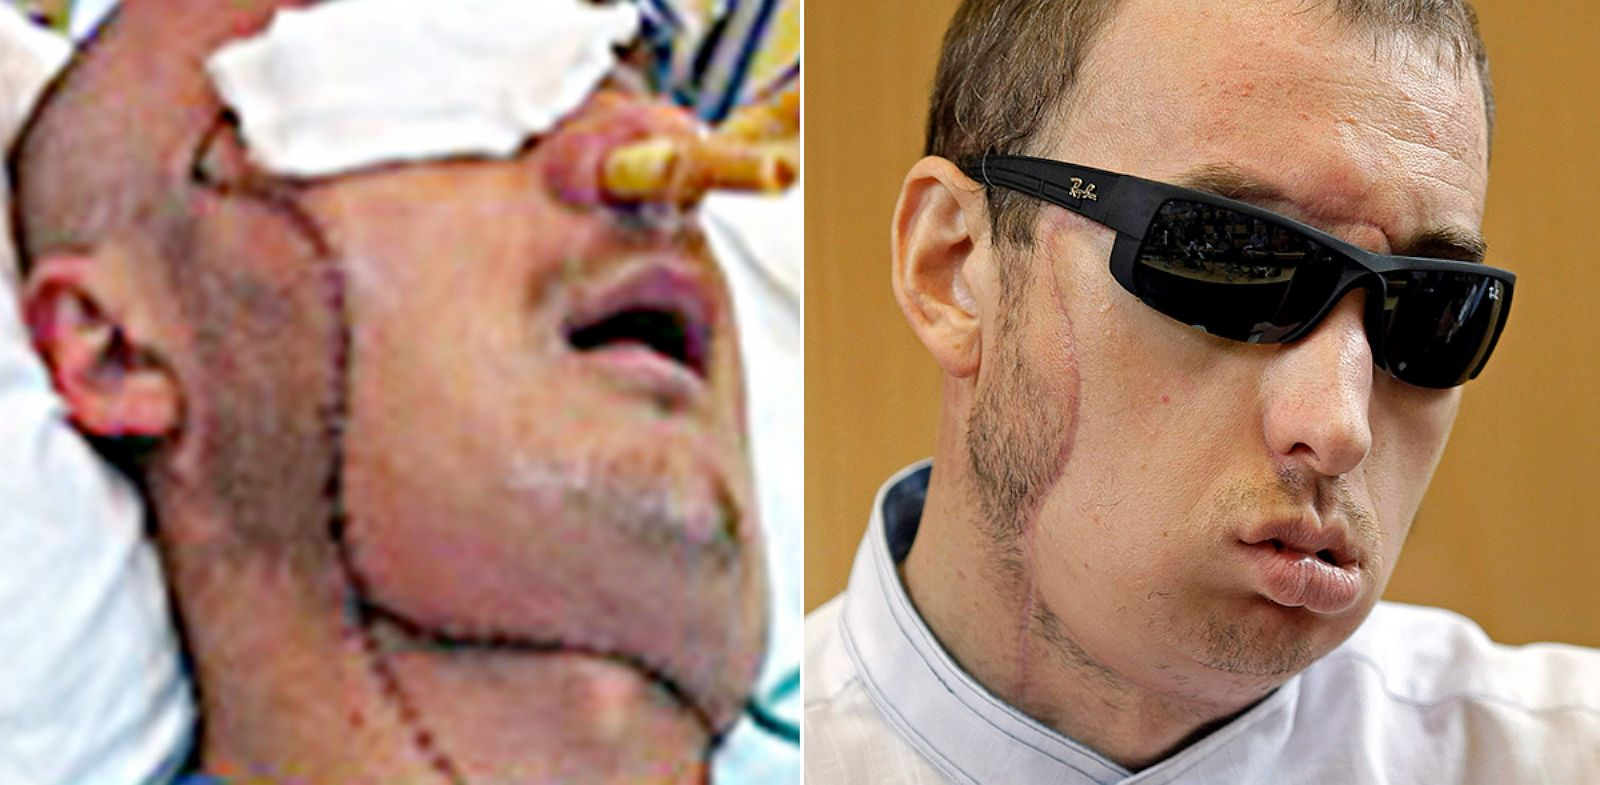 PHOTO: Polands First Successful Face Transplant